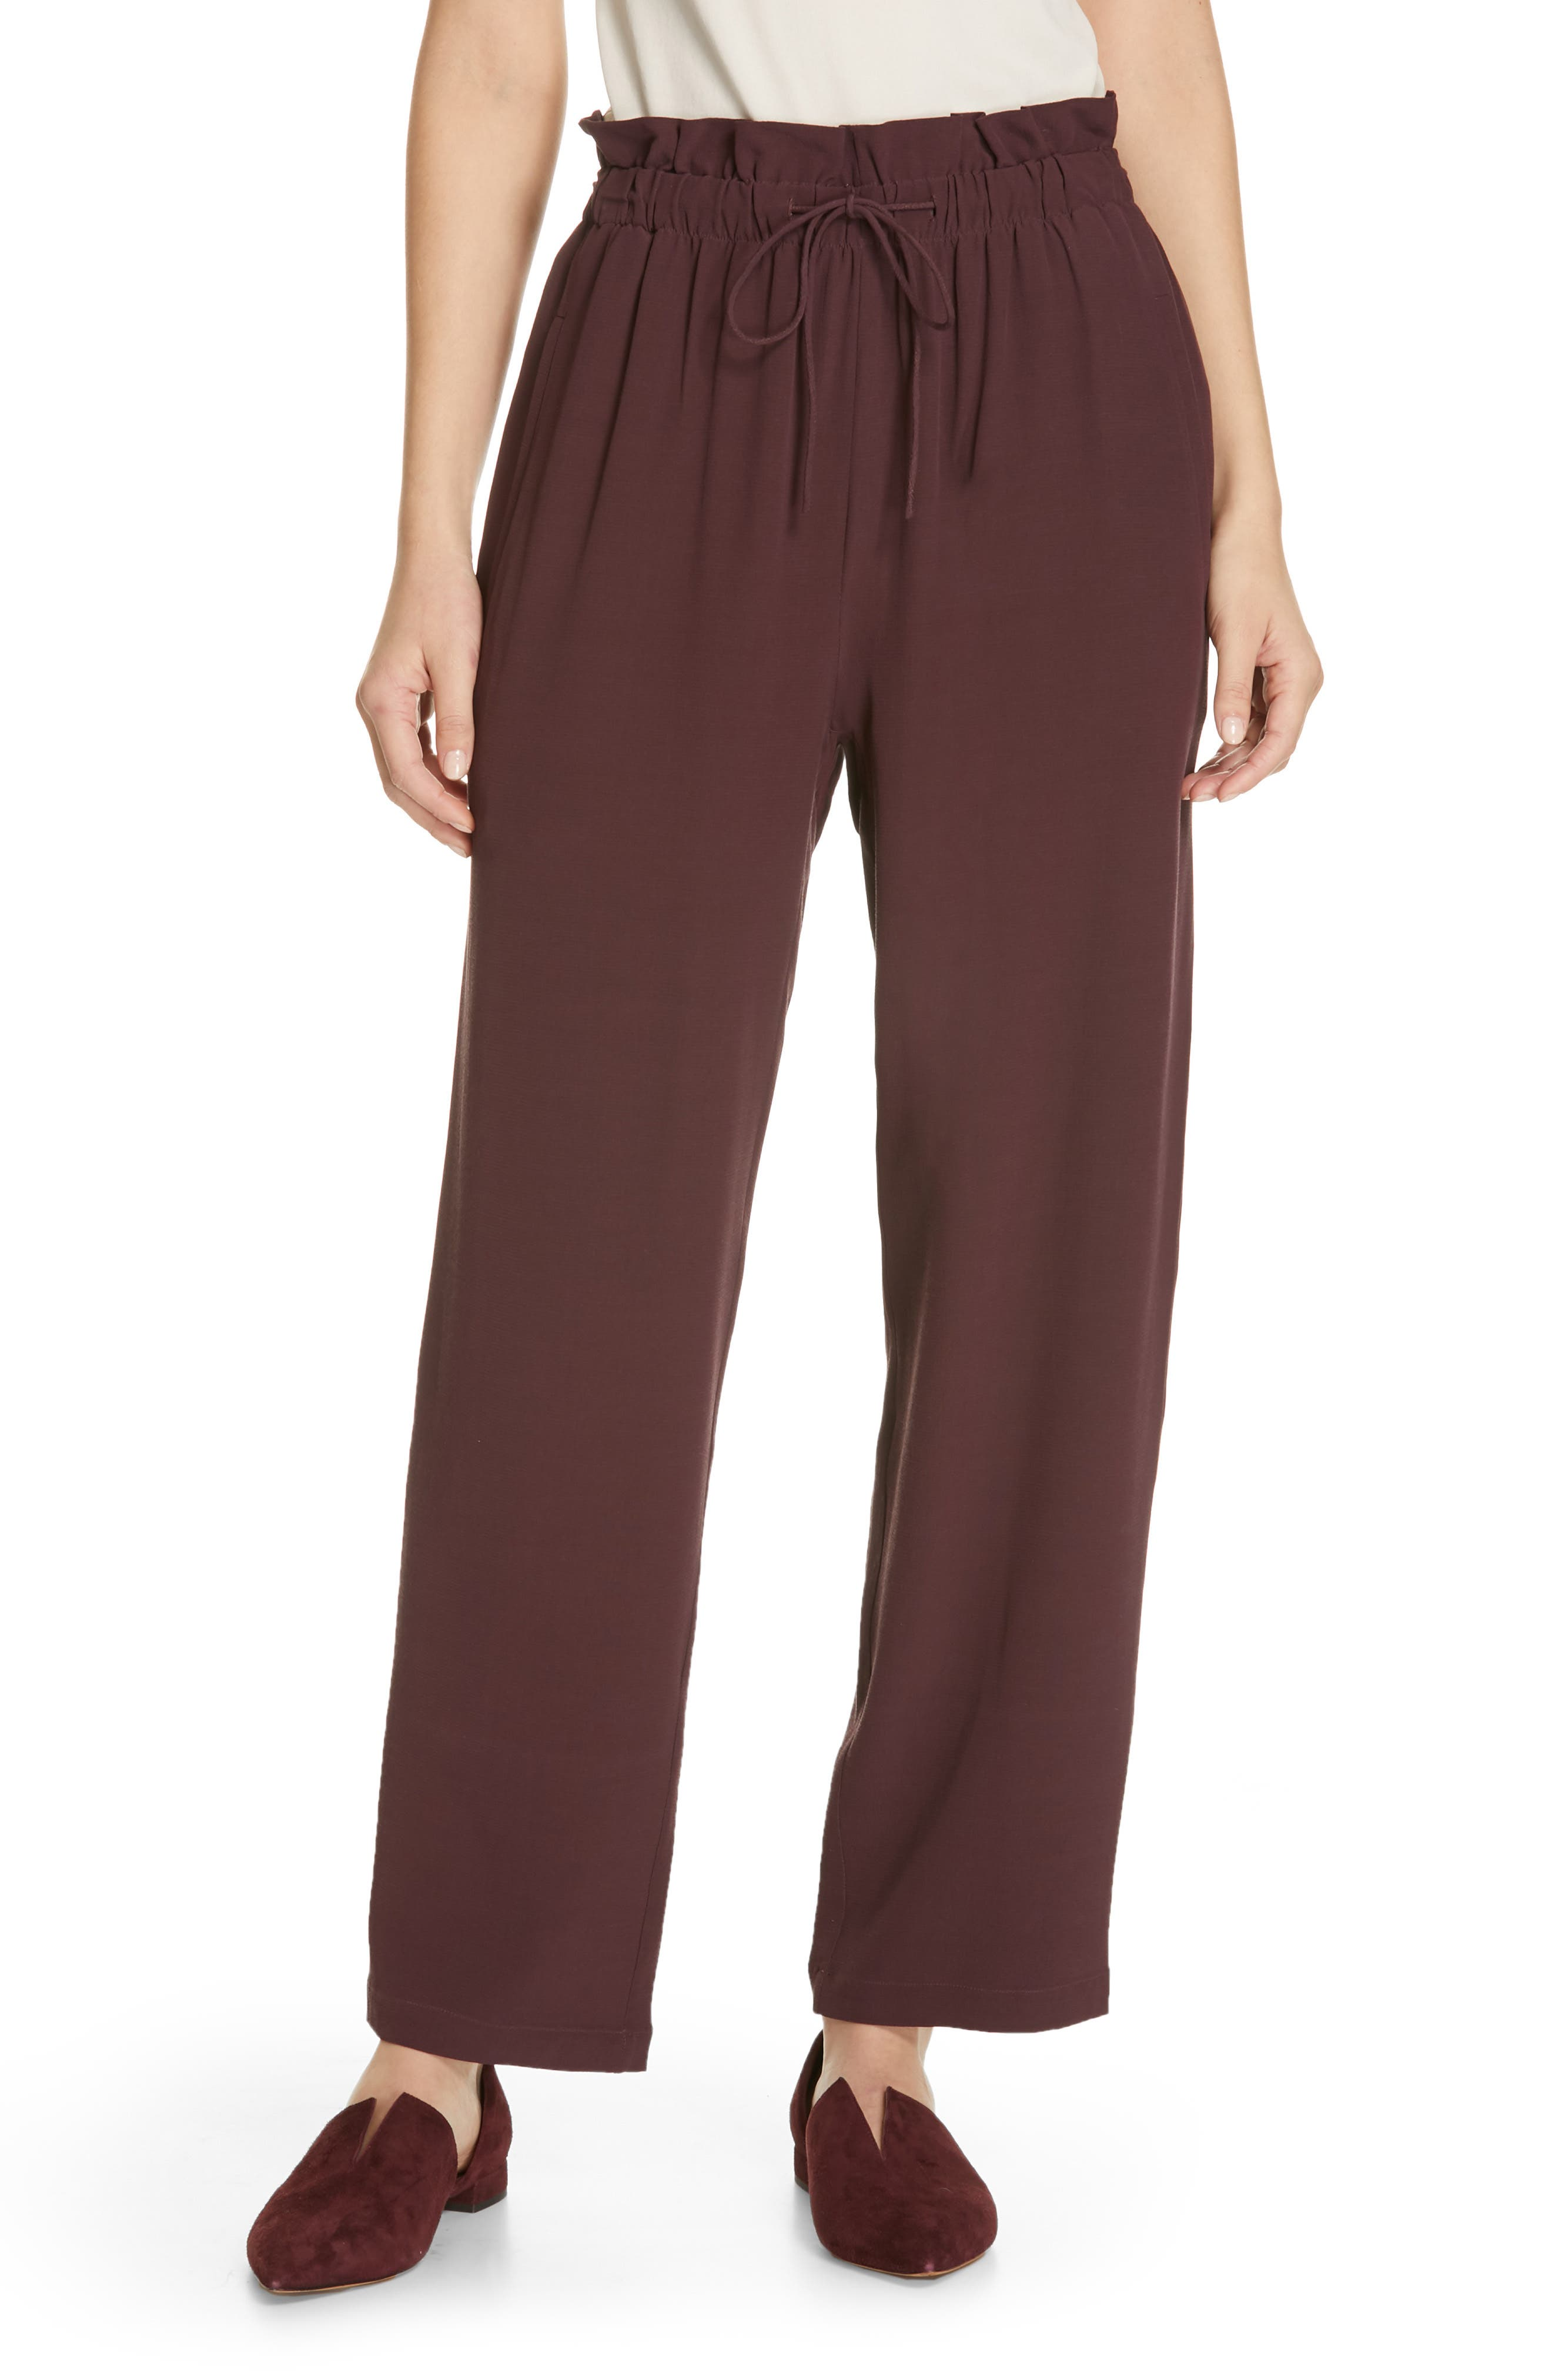 EILEEN FISHER, Crepe Pants, Main thumbnail 1, color, CASSIS